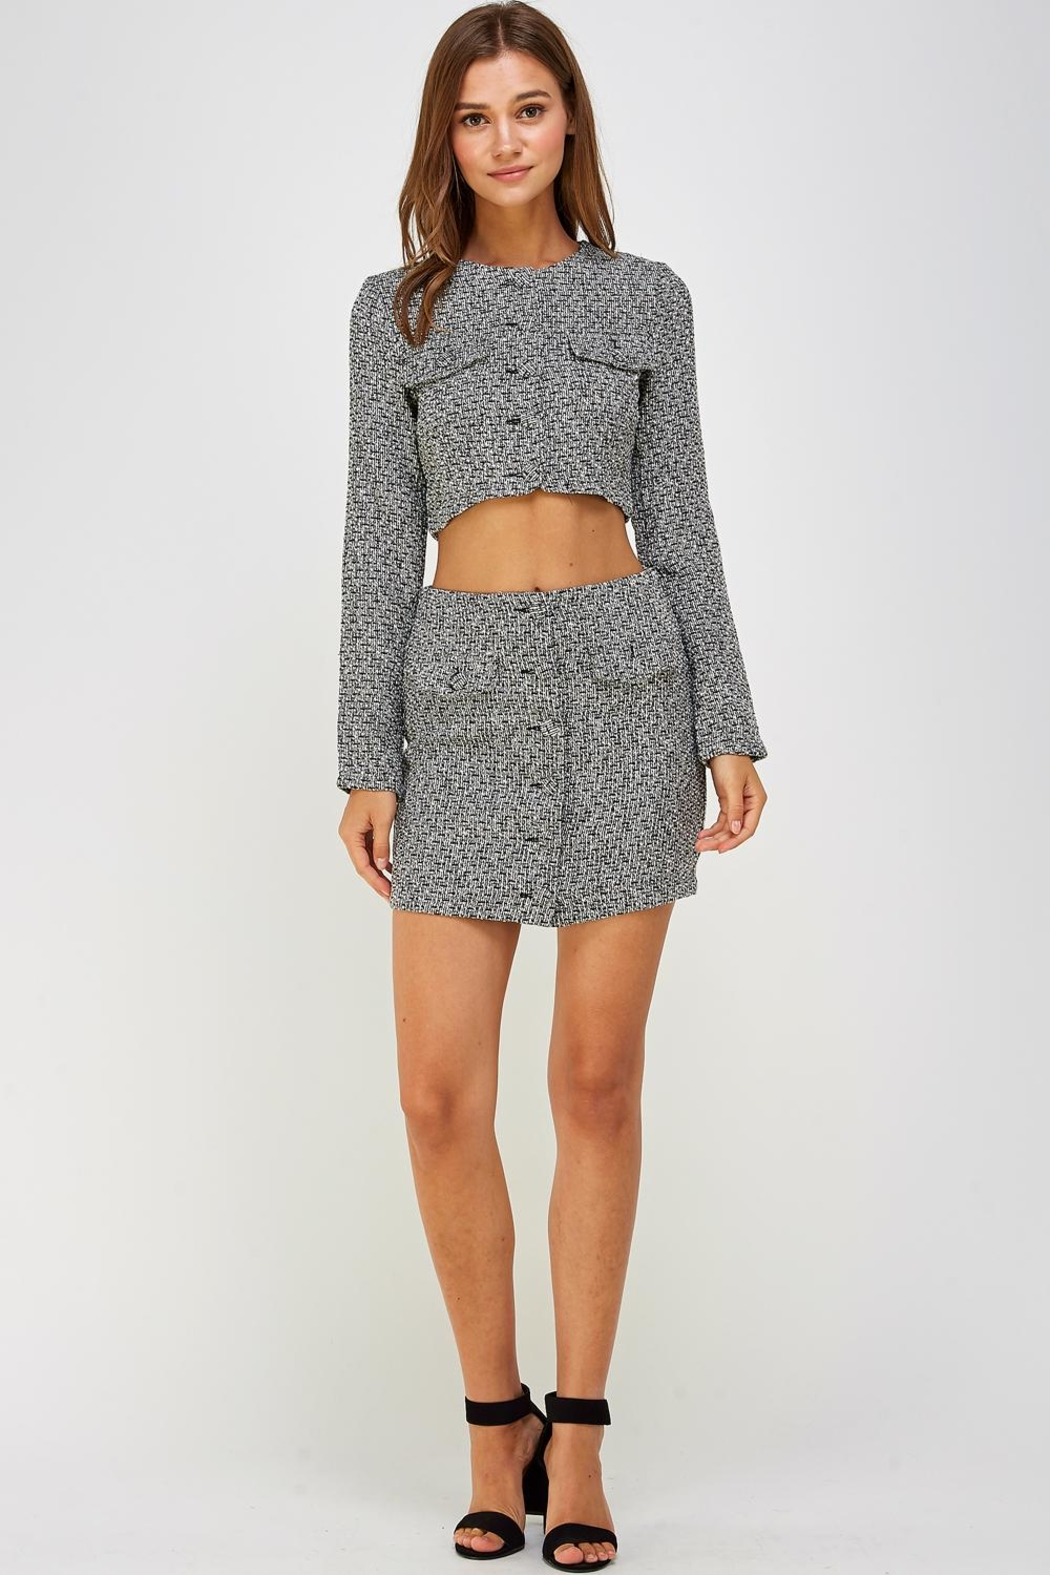 Wild Honey Tweed Skirt Set - Front Full Image